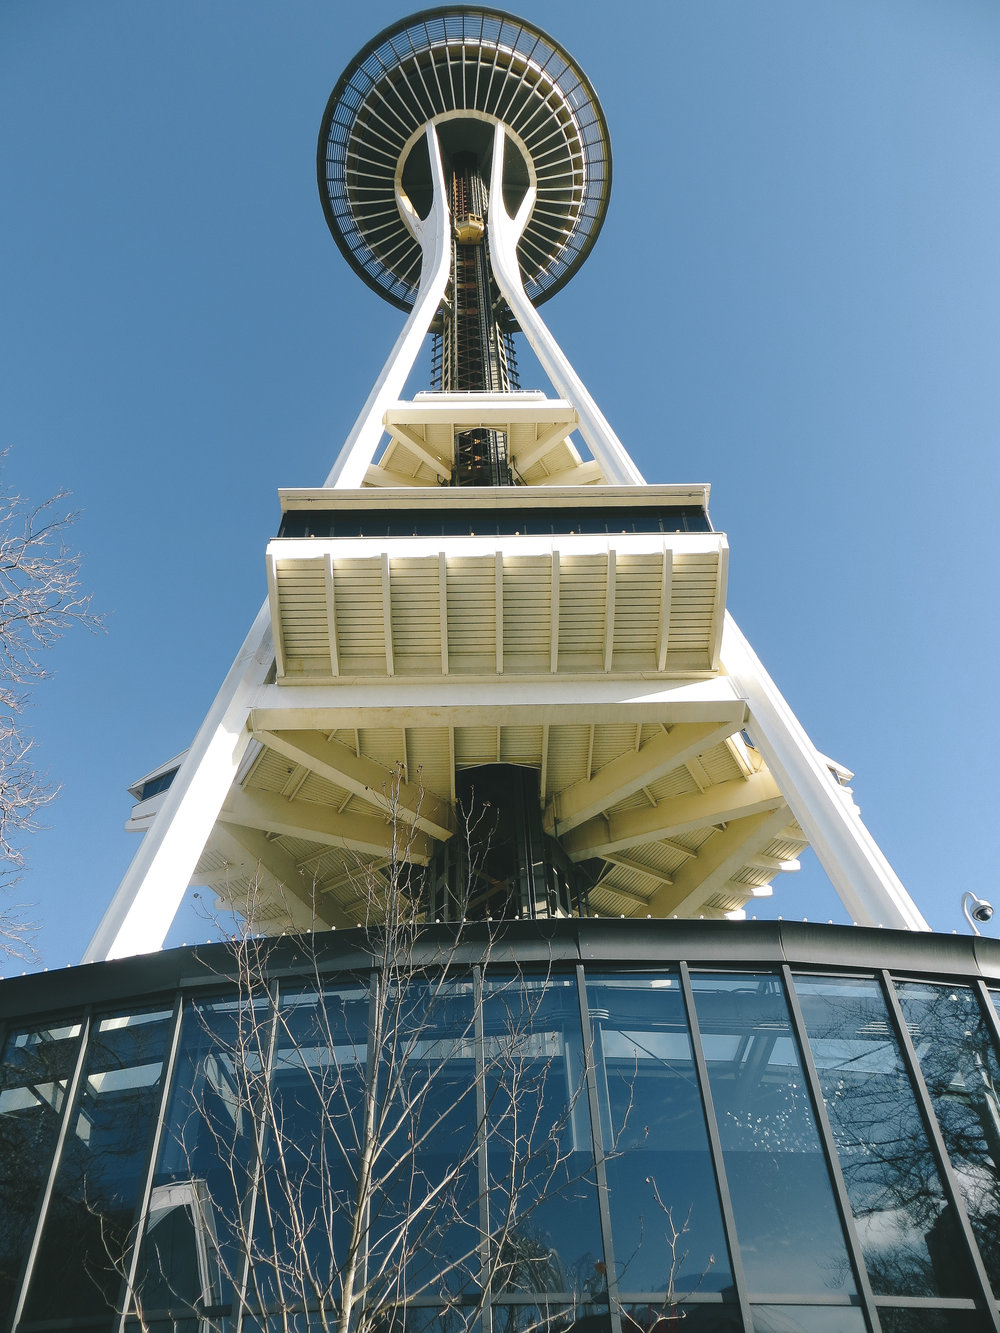 Insiders guide to seattle -space needle - www.letsregale.com - pacific northwest travel blogger 3.jpg